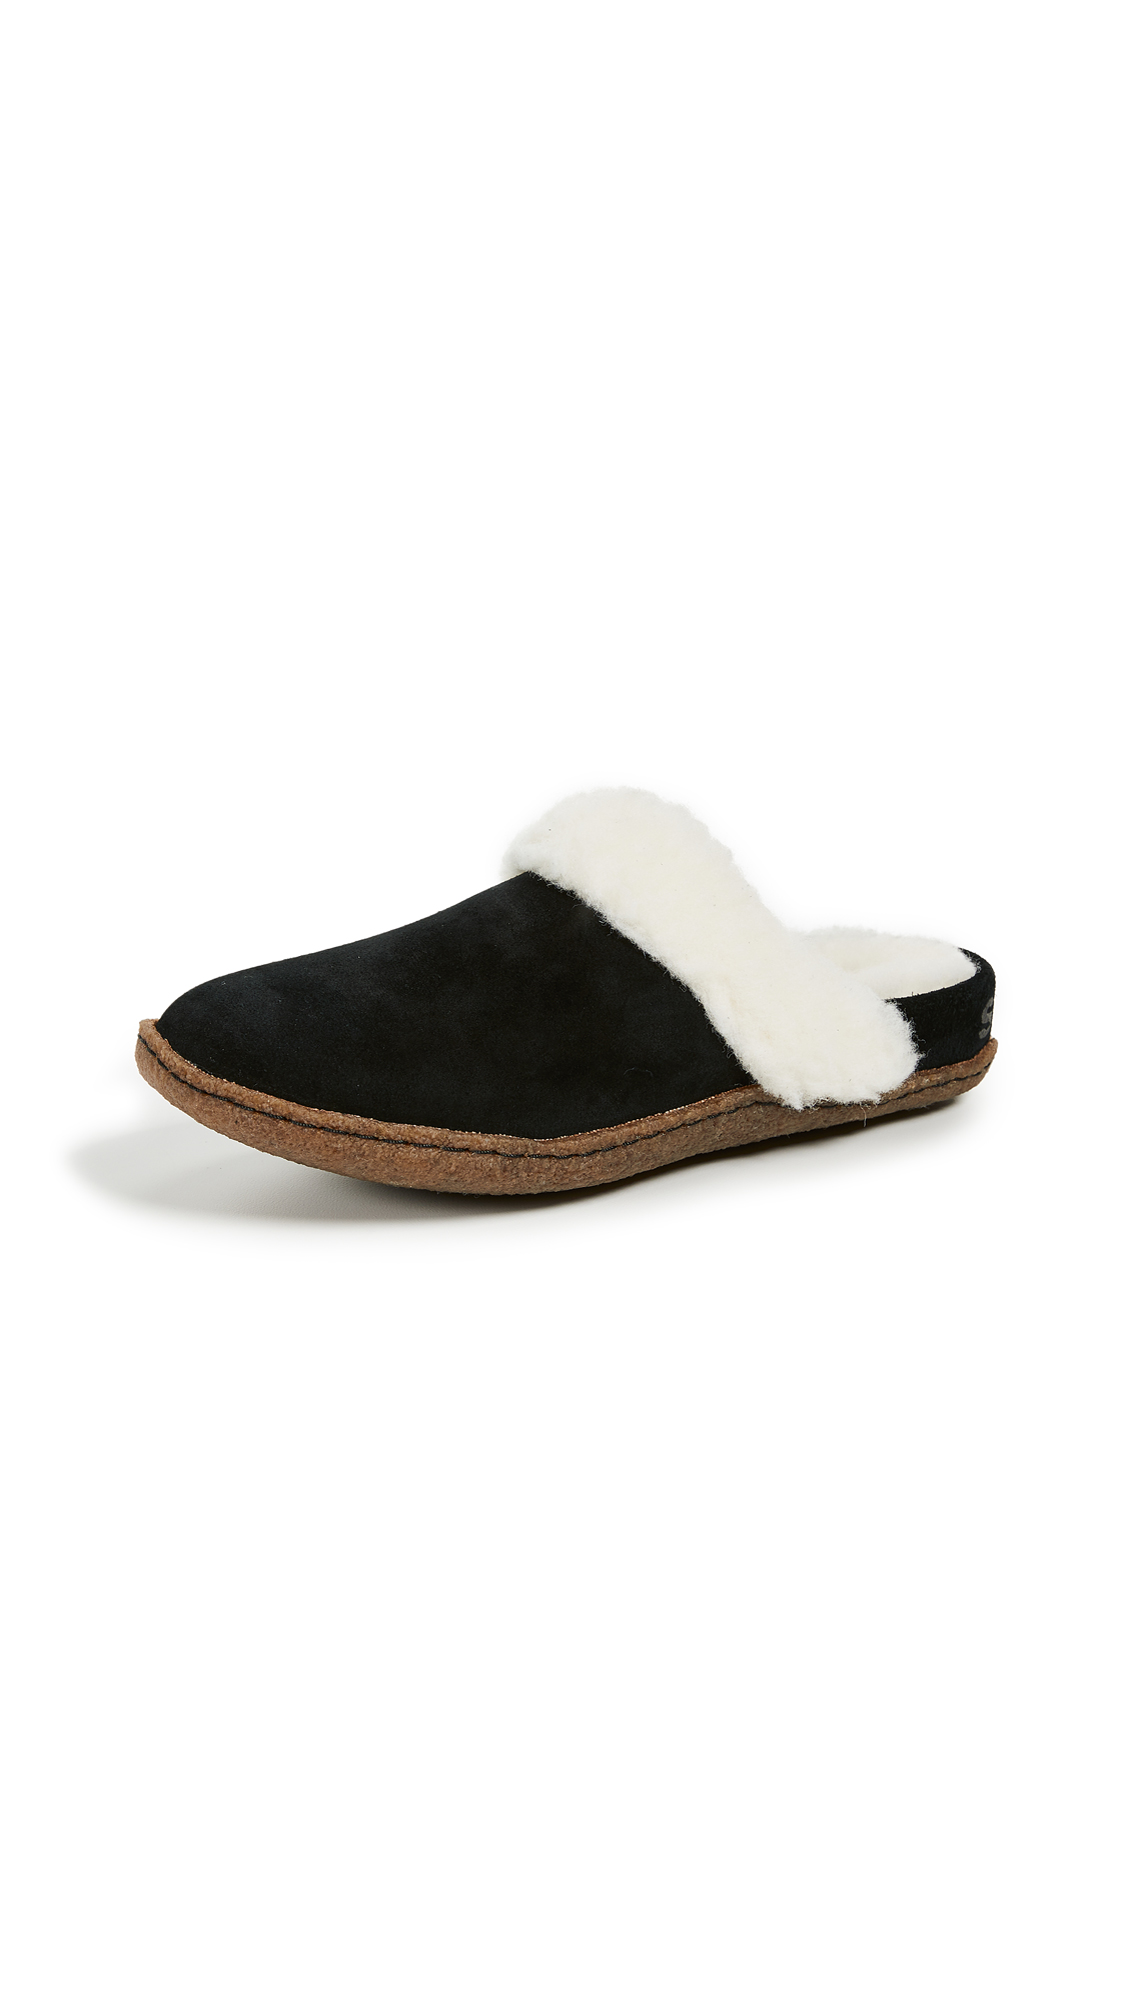 Sorel Nakiska Slide II Slippers - Black/Natural